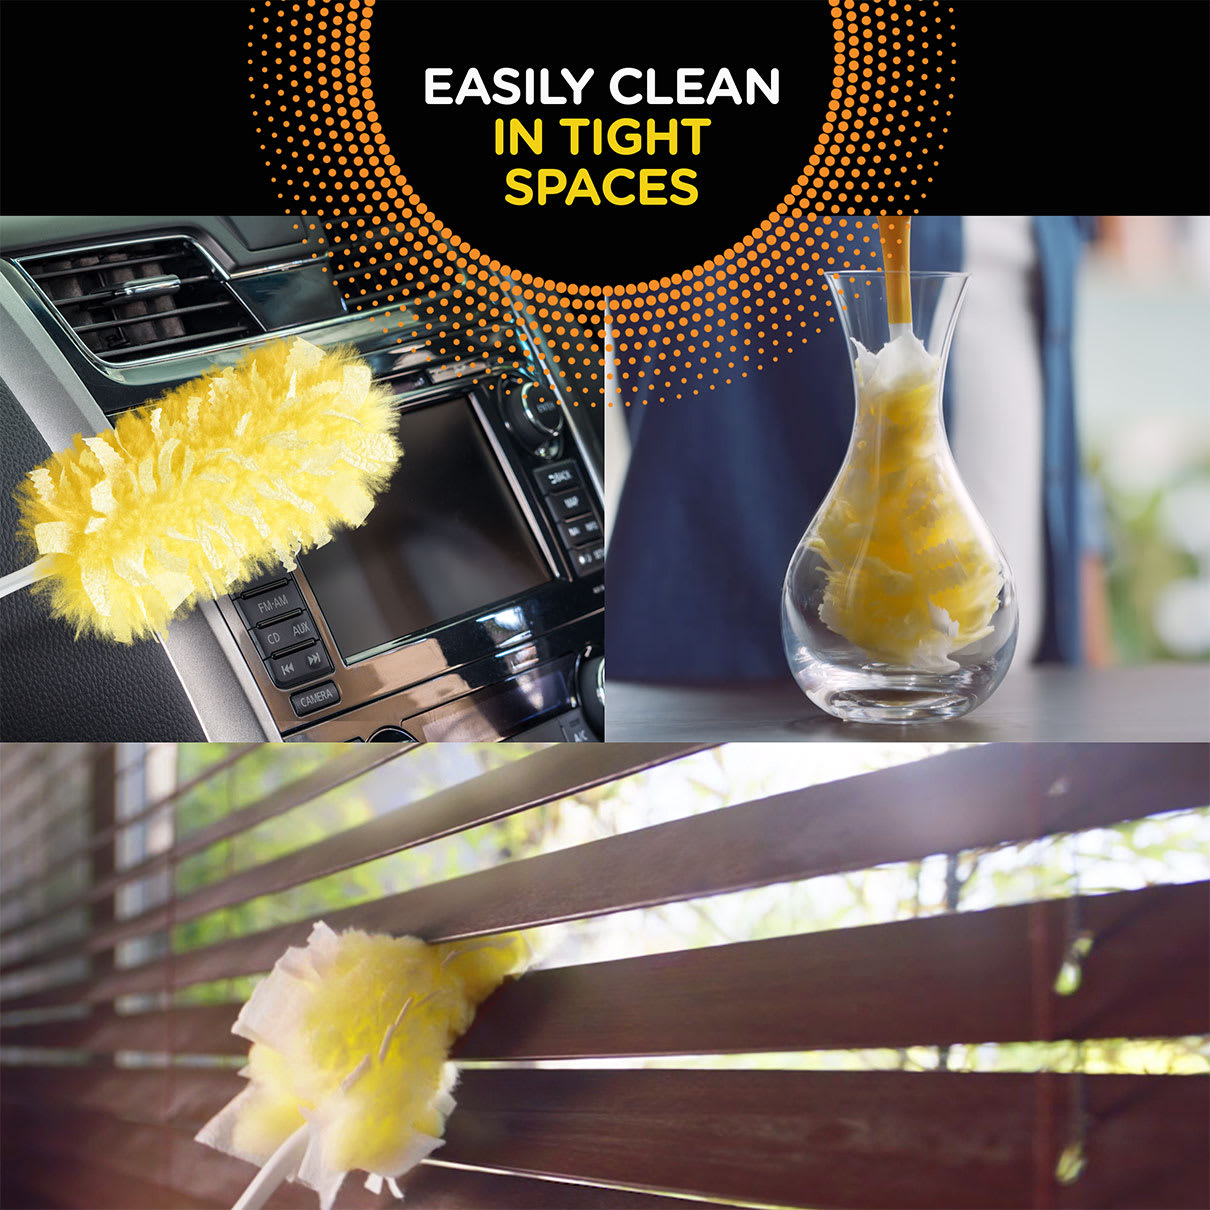 Swiffer Duster Easy Cleaning in Tight Spaces